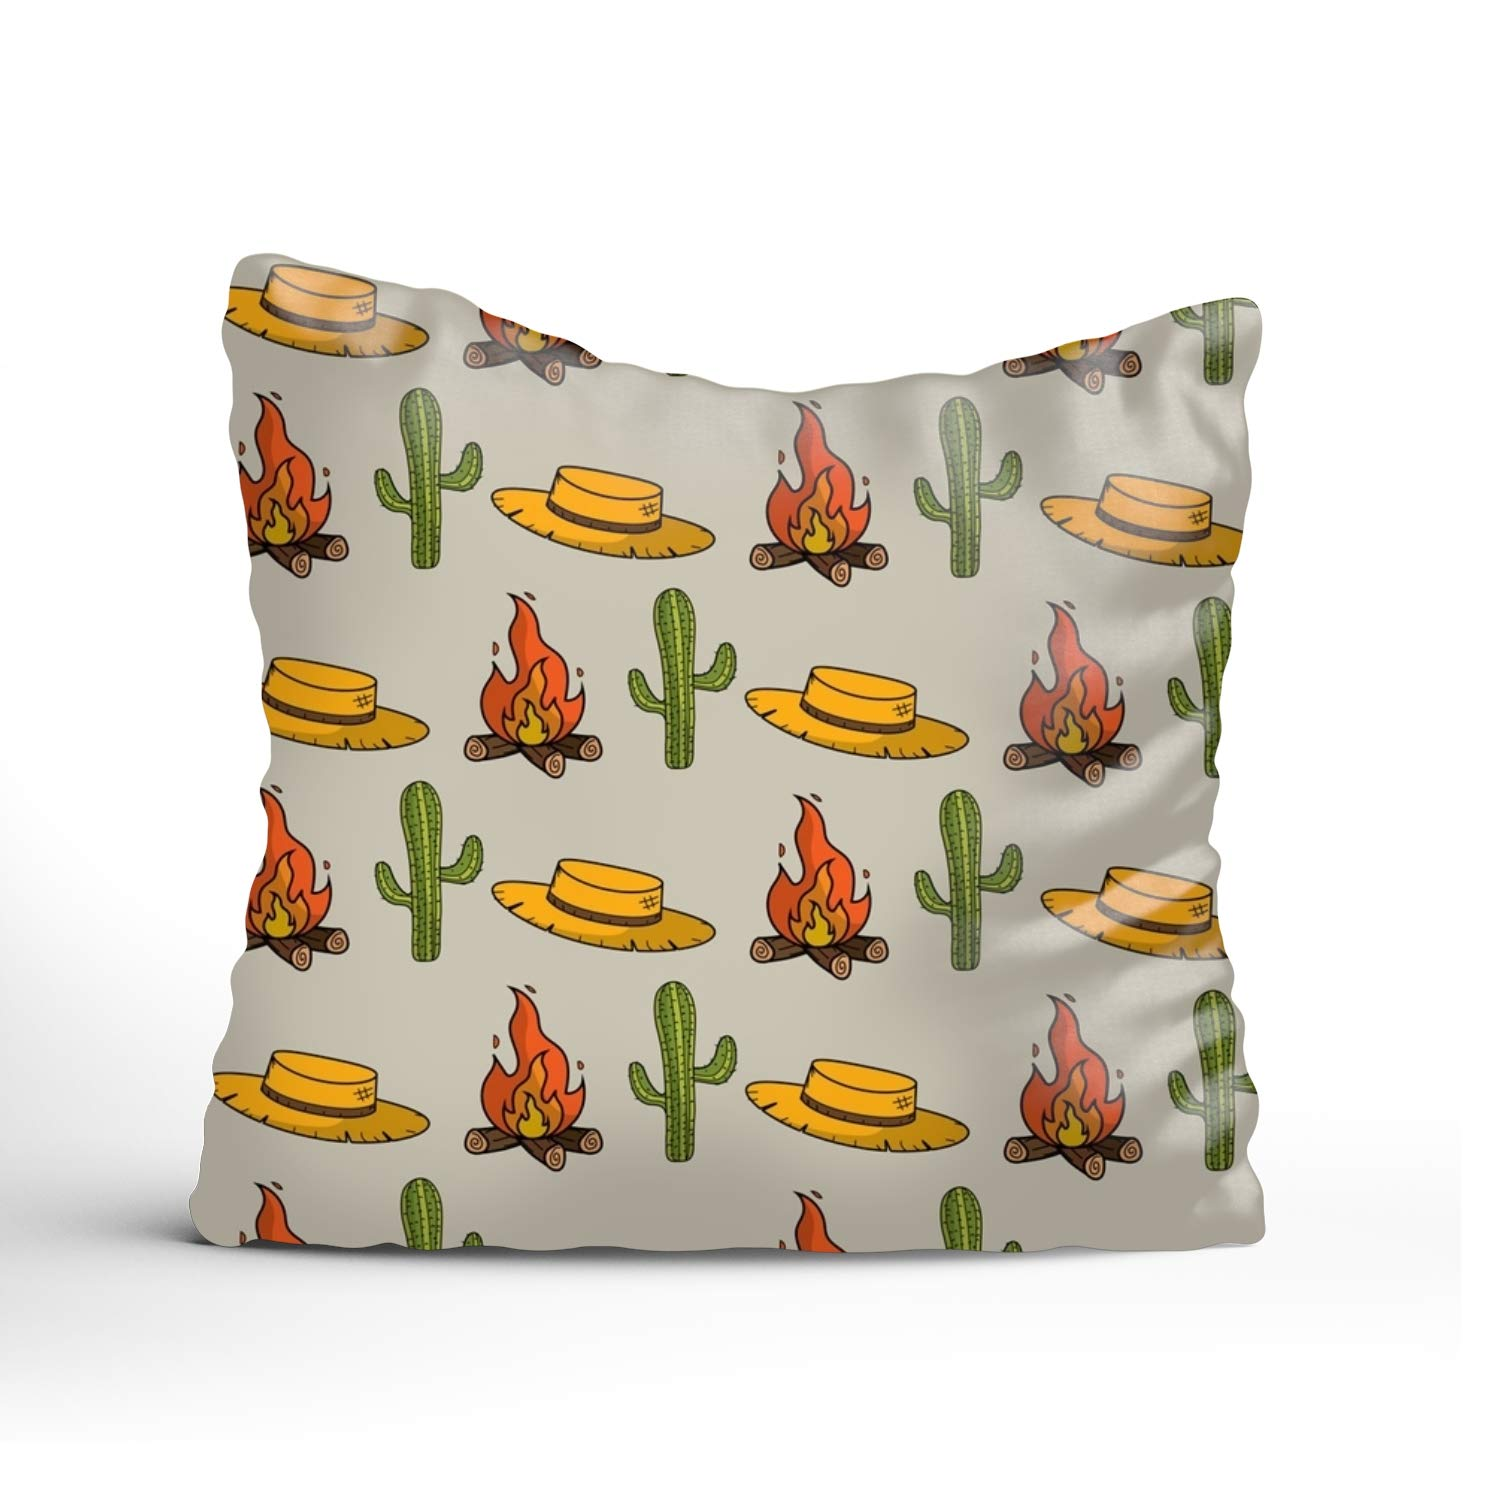 YooSoeLink 400-Thread-CountHat Cactus and Wood Cotton Sateen Hotel Stitch Sham - Standard, Navy